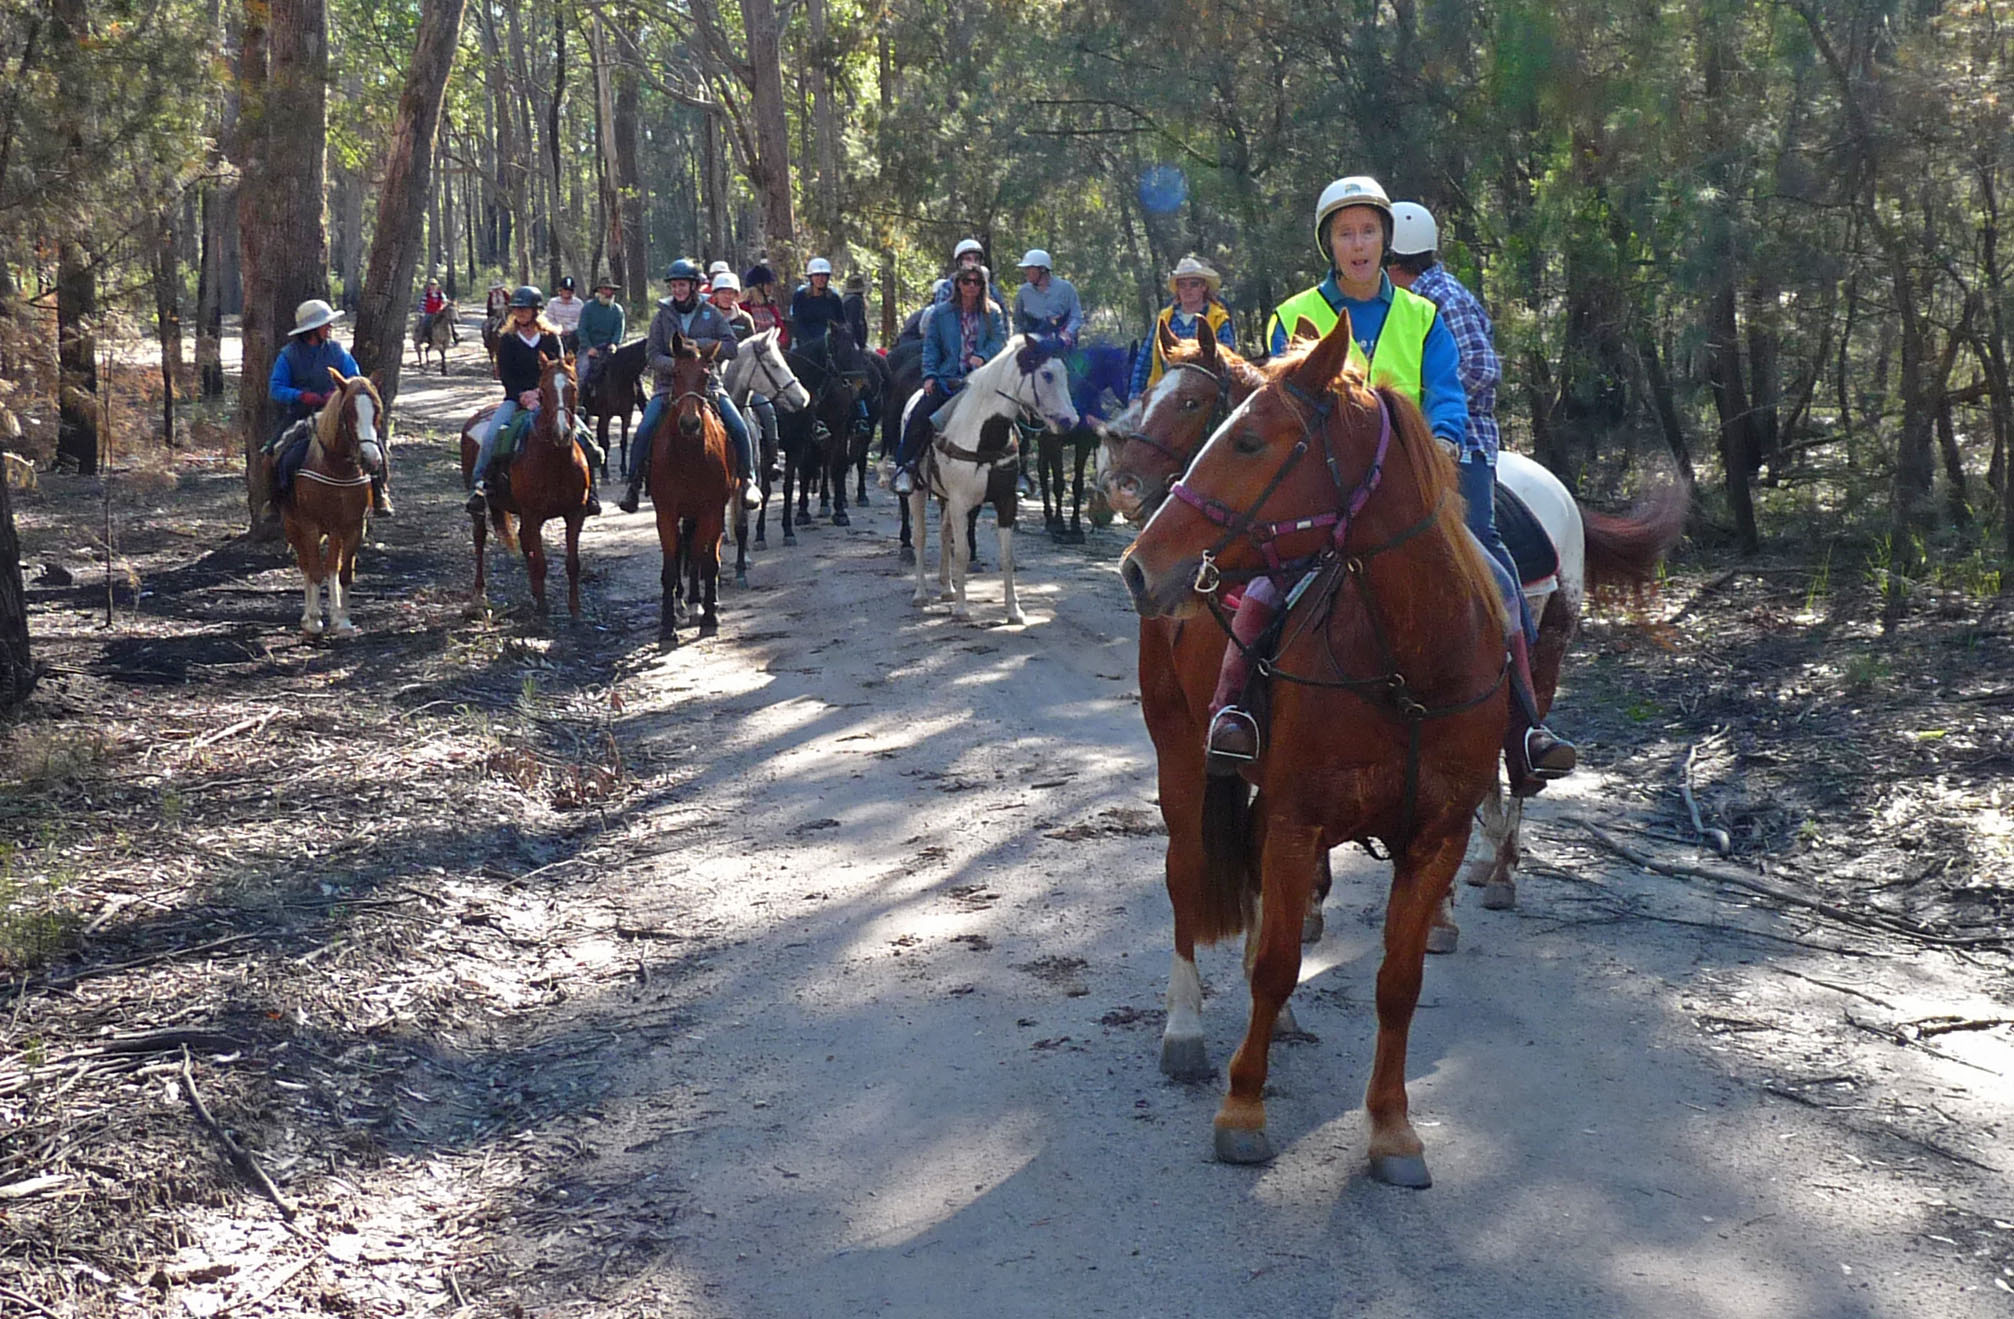 Jackie Whiting has been a member of Tambo for many years. She led the Anniversary ride from her and her husband Mark's property at Cunningham's Rd